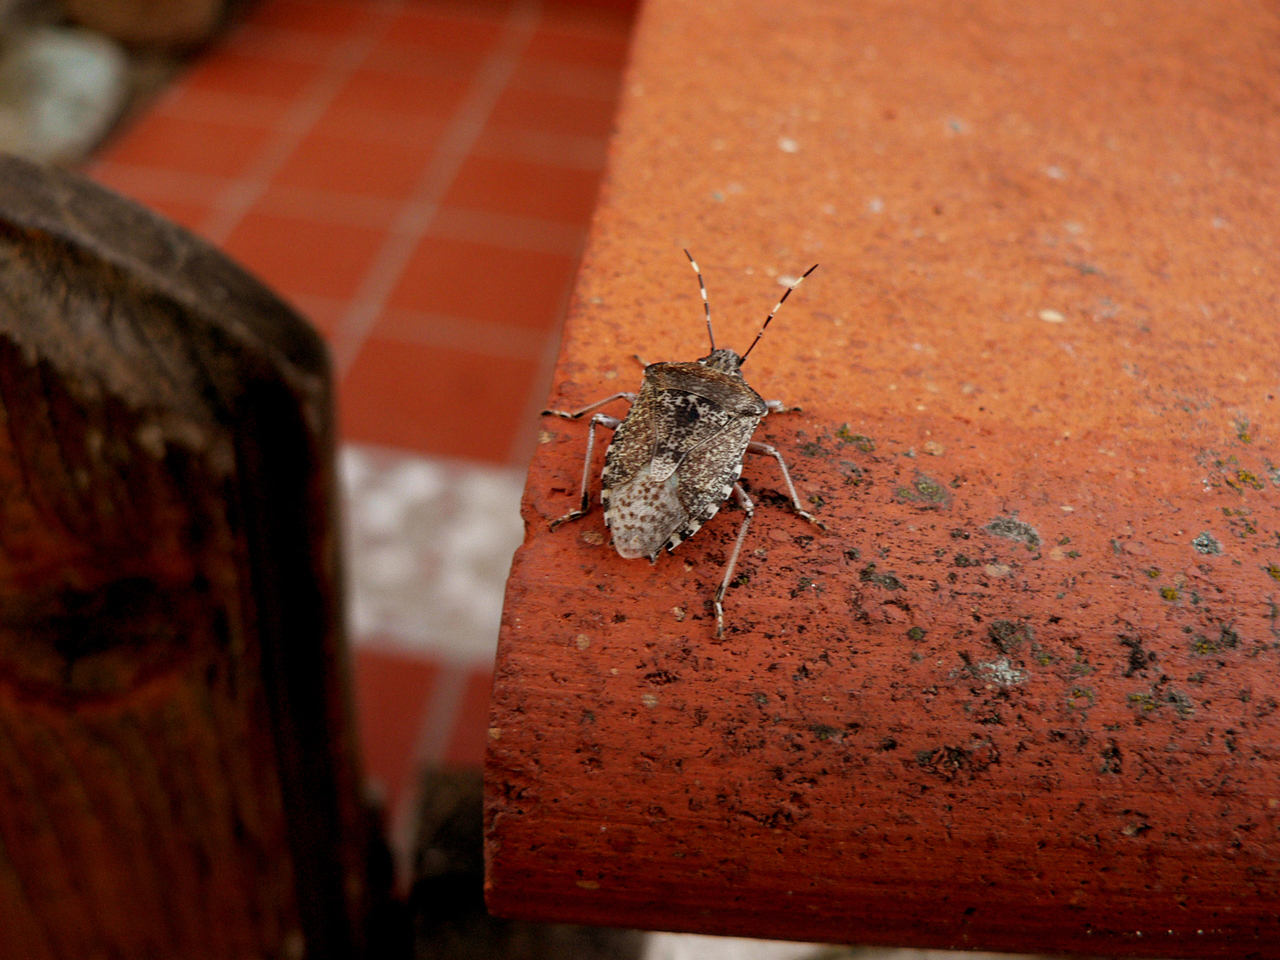 It's that time of year and stink bugs are back!